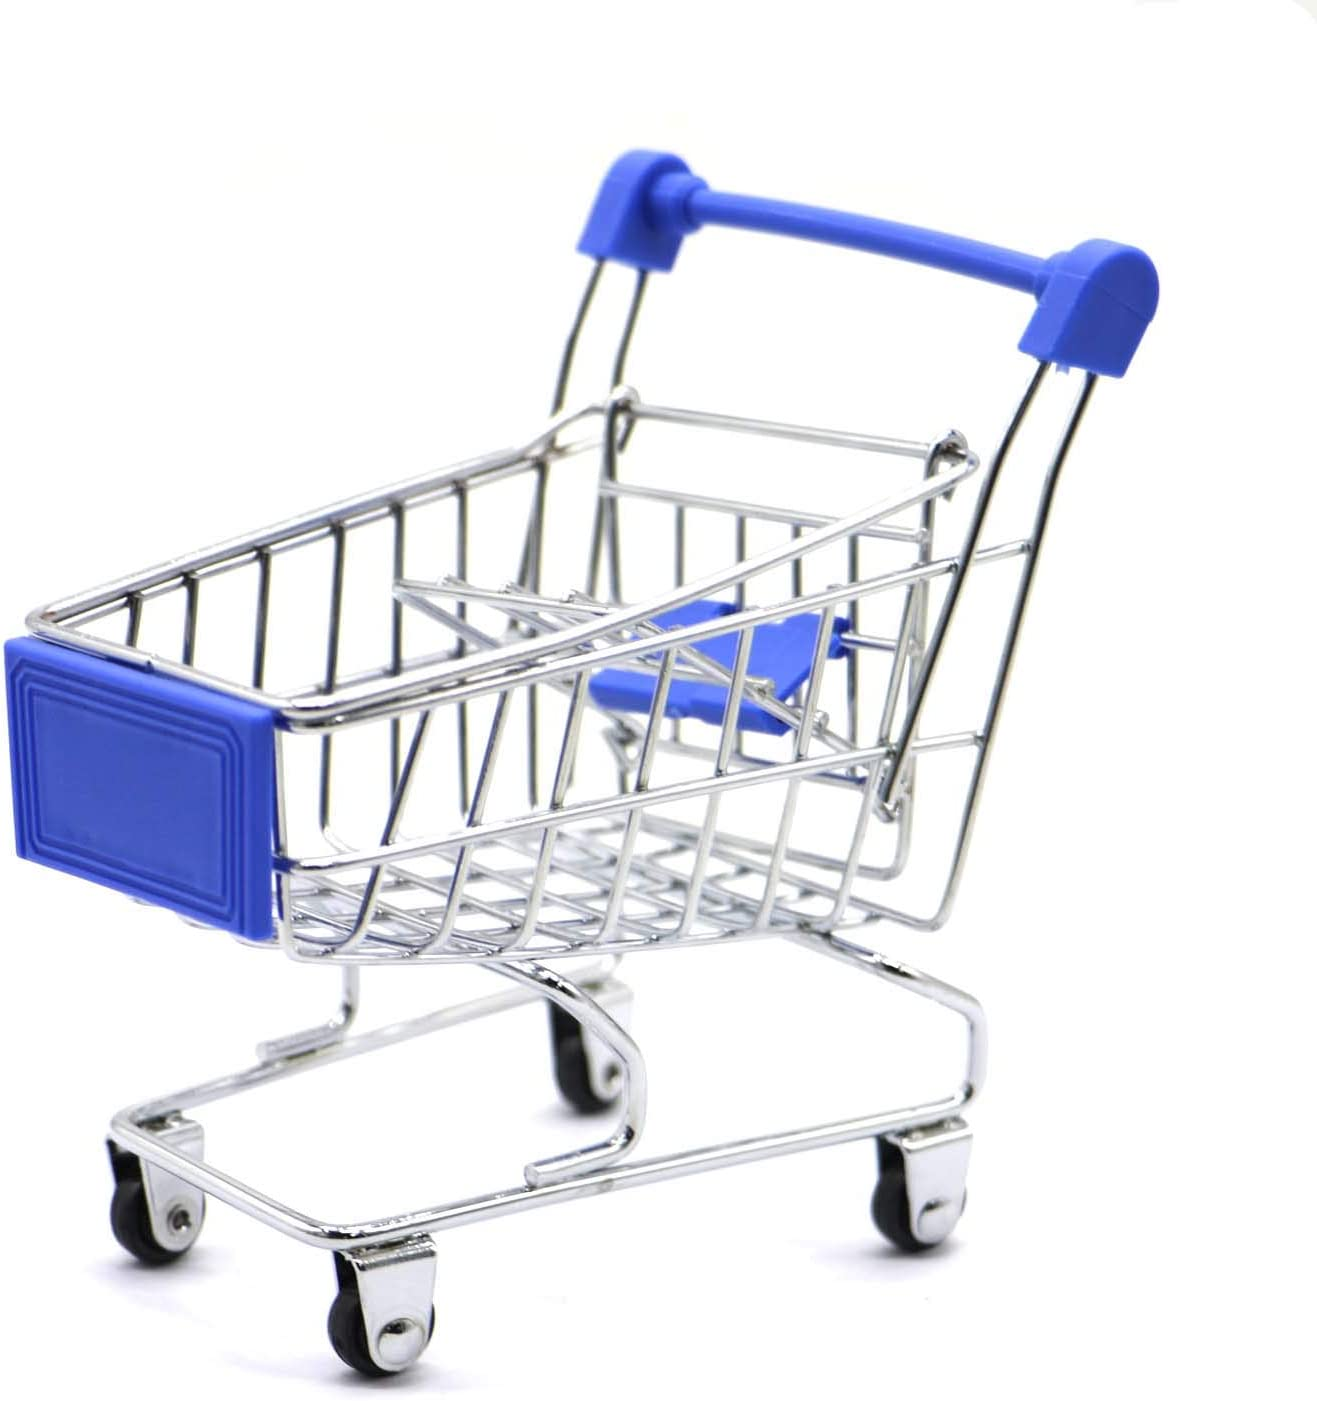 Kids Mini Shopping Cart Roll Wheel Moving Doll Toys Holder Cool Desk Holder Tiny Cute Supermarket Cart Trolly Sturdy Metal Novelty Adorable Gifts For Children (dark blue, M(7.1×5.3×6.5 inch))